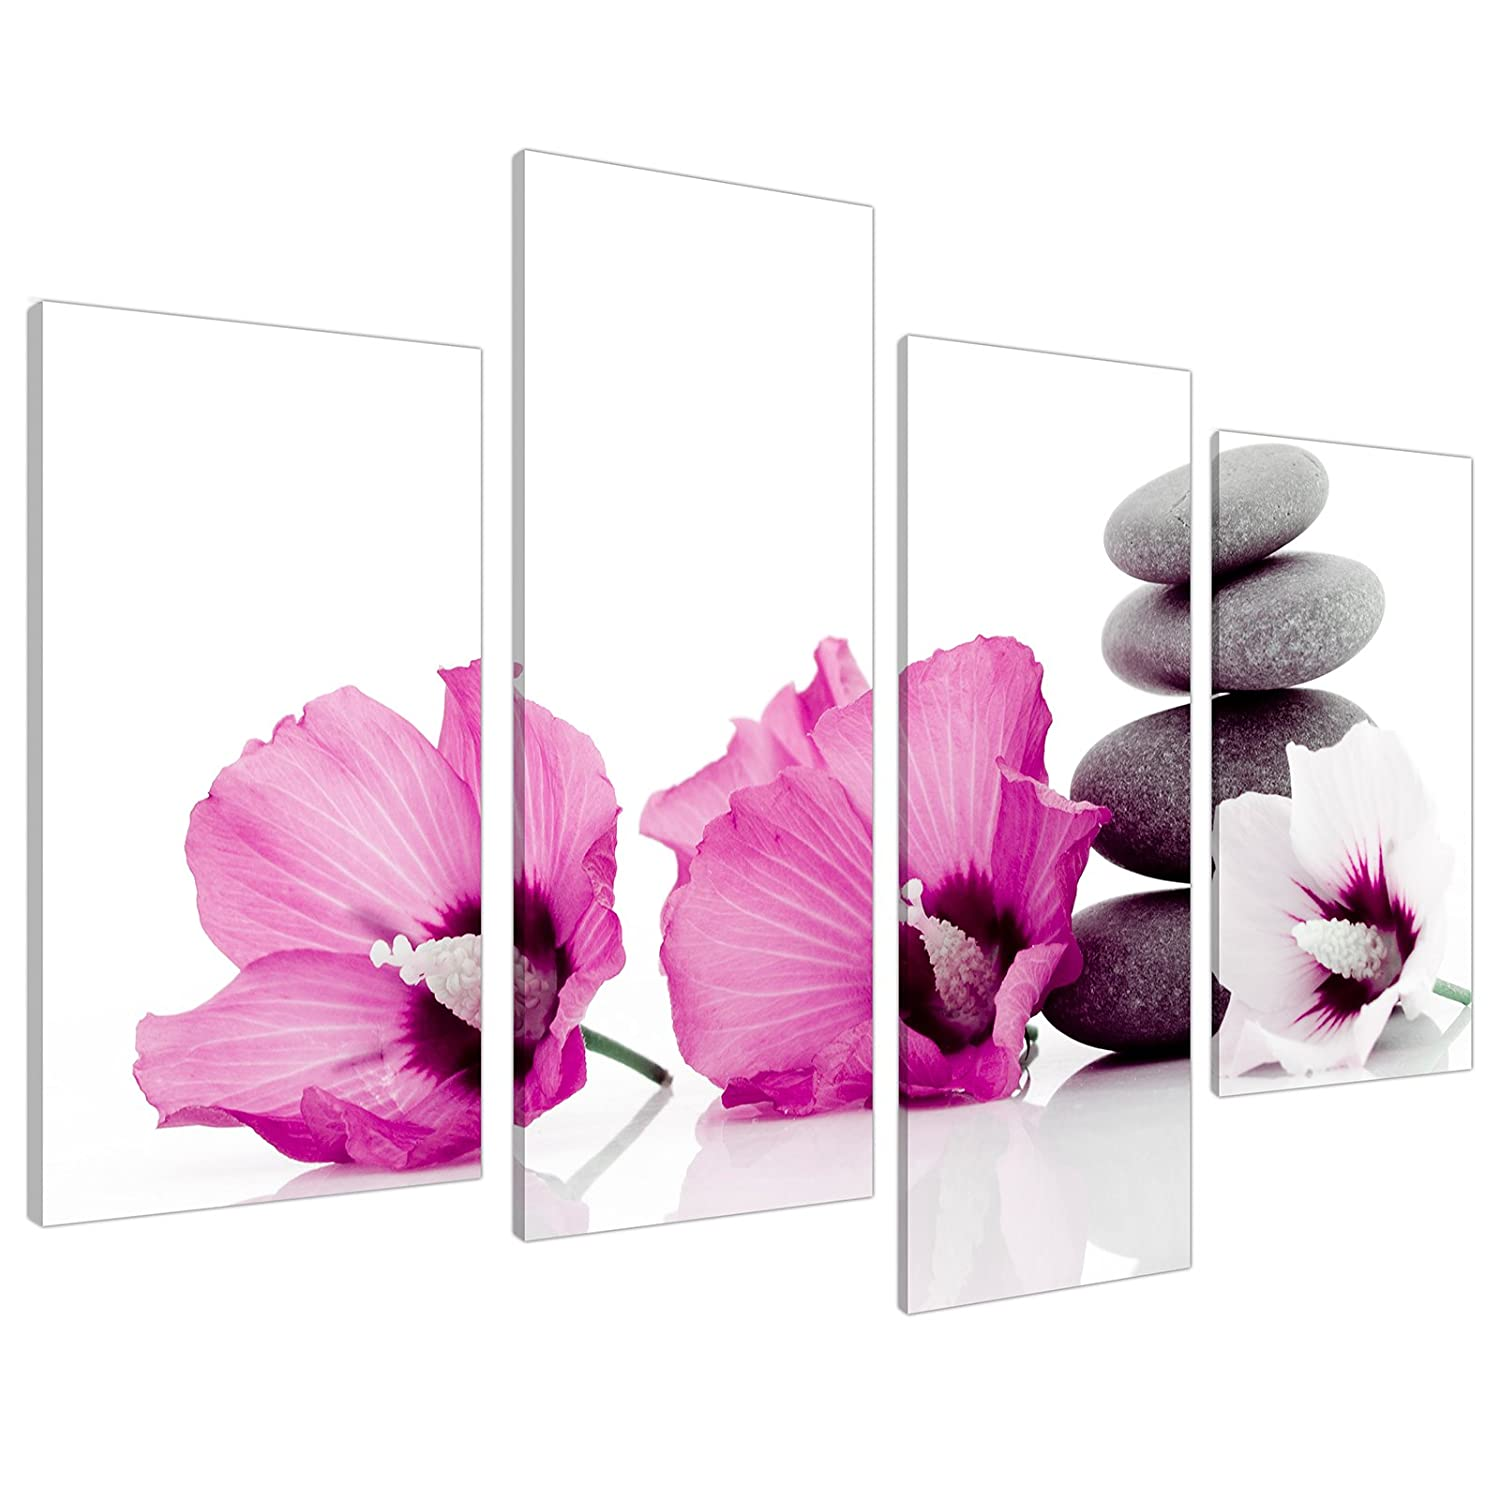 Large pink flower floral canvas wall art pictures 130cm set xl 4069 large pink flower floral canvas wall art pictures 130cm set xl 4069 amazon kitchen home mightylinksfo